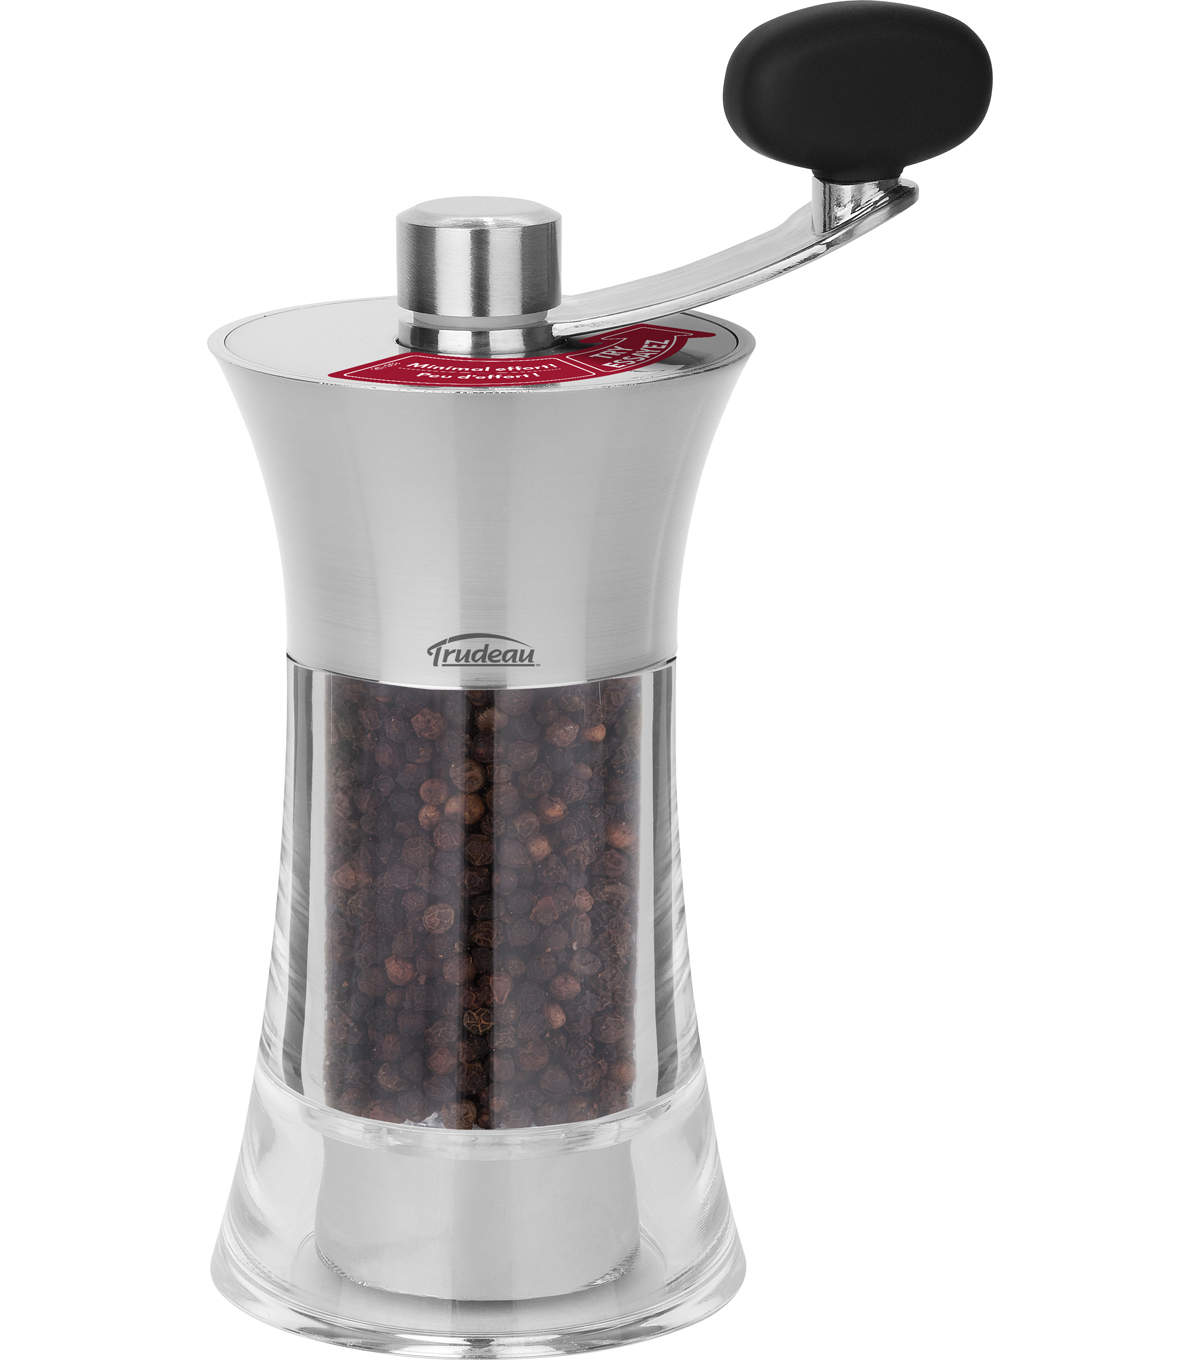 Trudeau 7\u0027\u0027 Easy Grind Pepper Mill-Silver